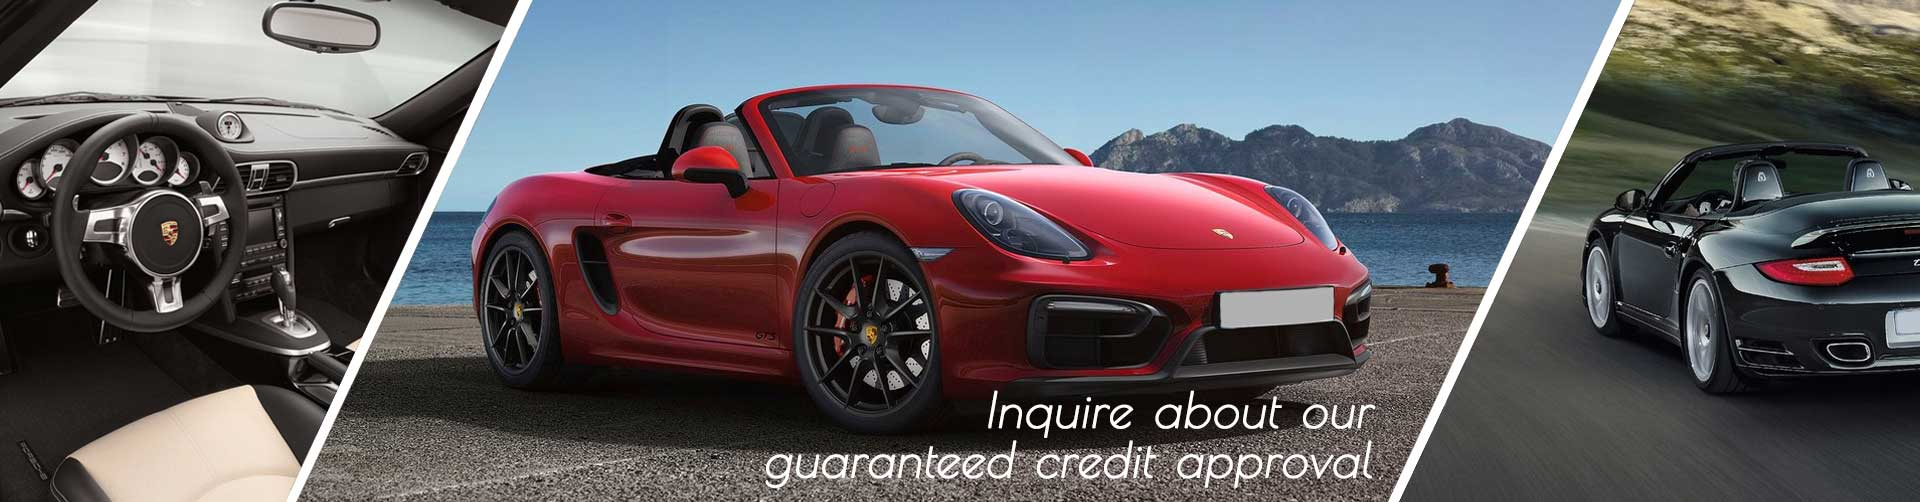 inquire about our guaranteed credit approval